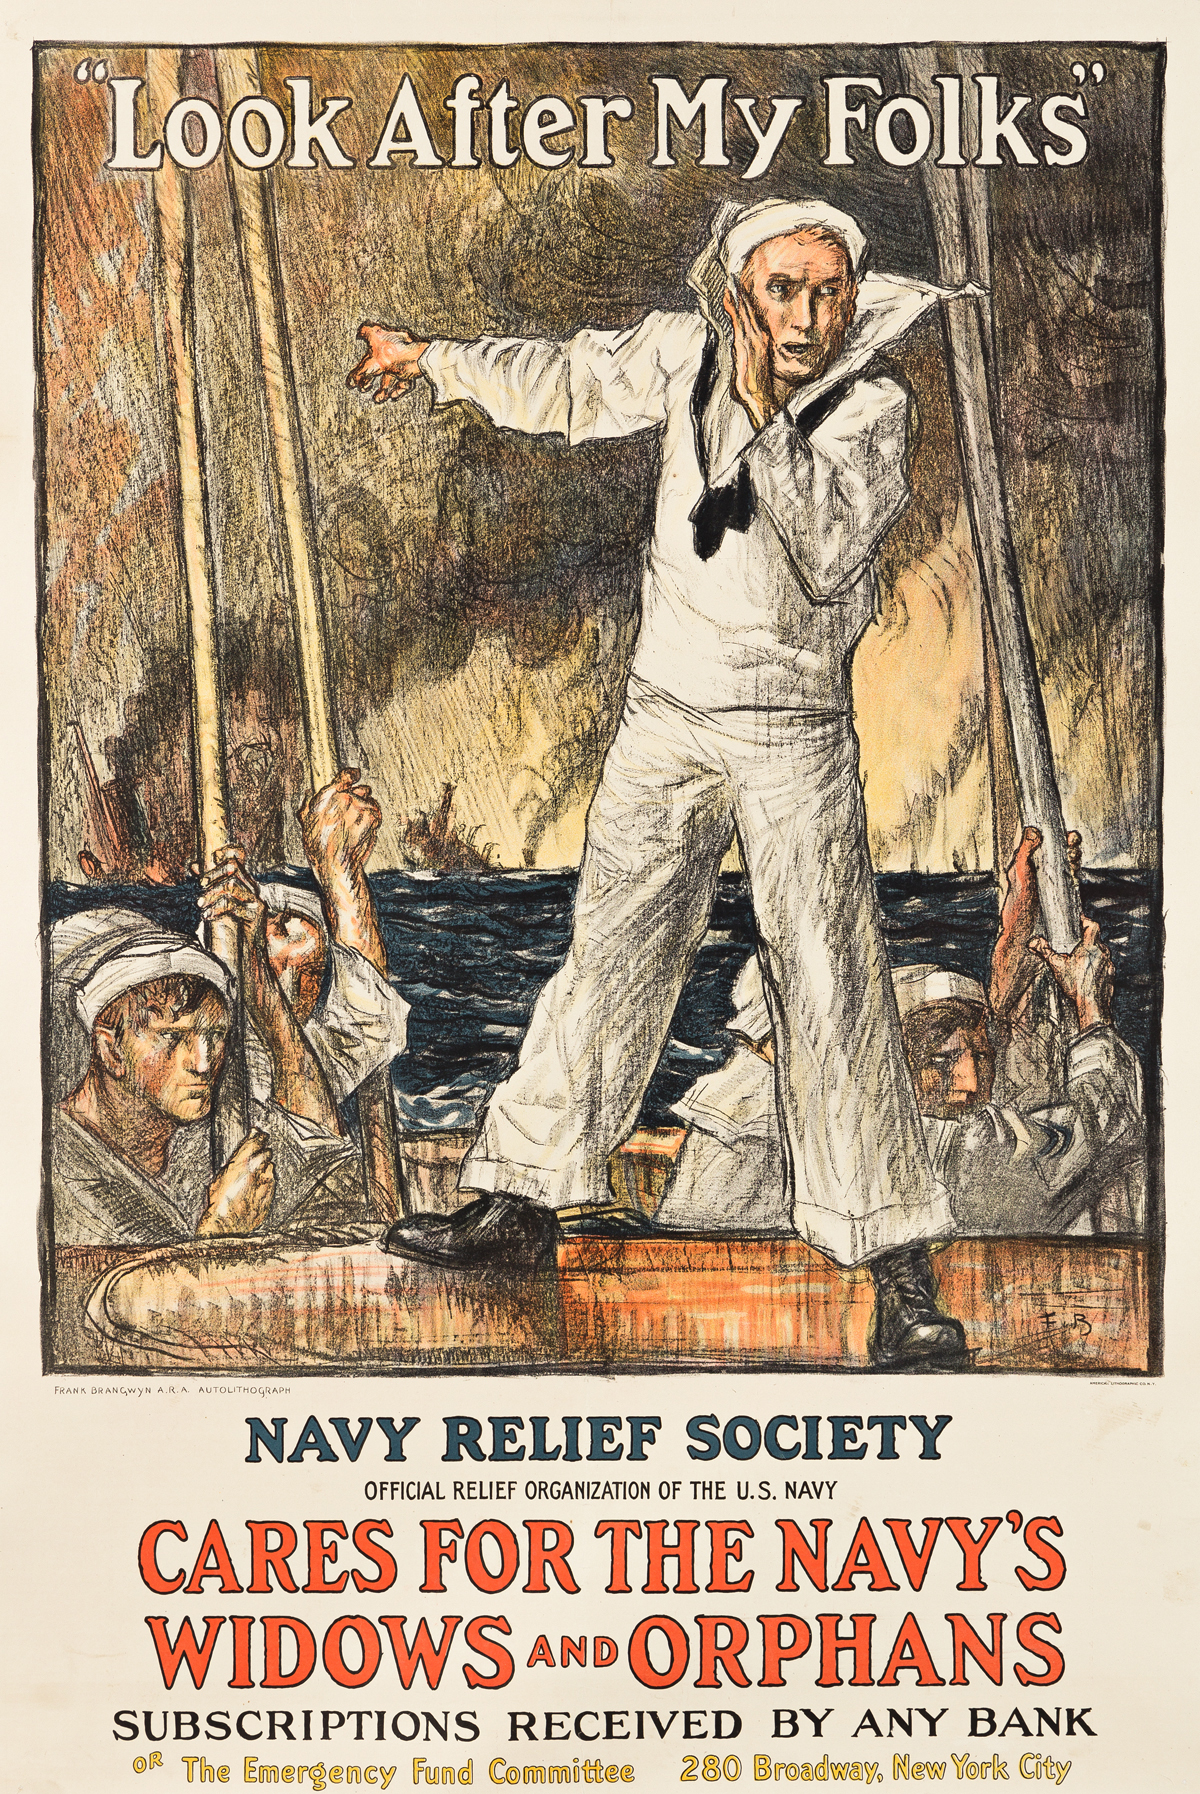 FRANK BRANGWYN (1867-1956).  LOOK AFTER MY FOLKS / NAVY RELIEF SOCIETY. Circa 1917. 41x27½ inches, 104x69¾ cm. American Lithographic